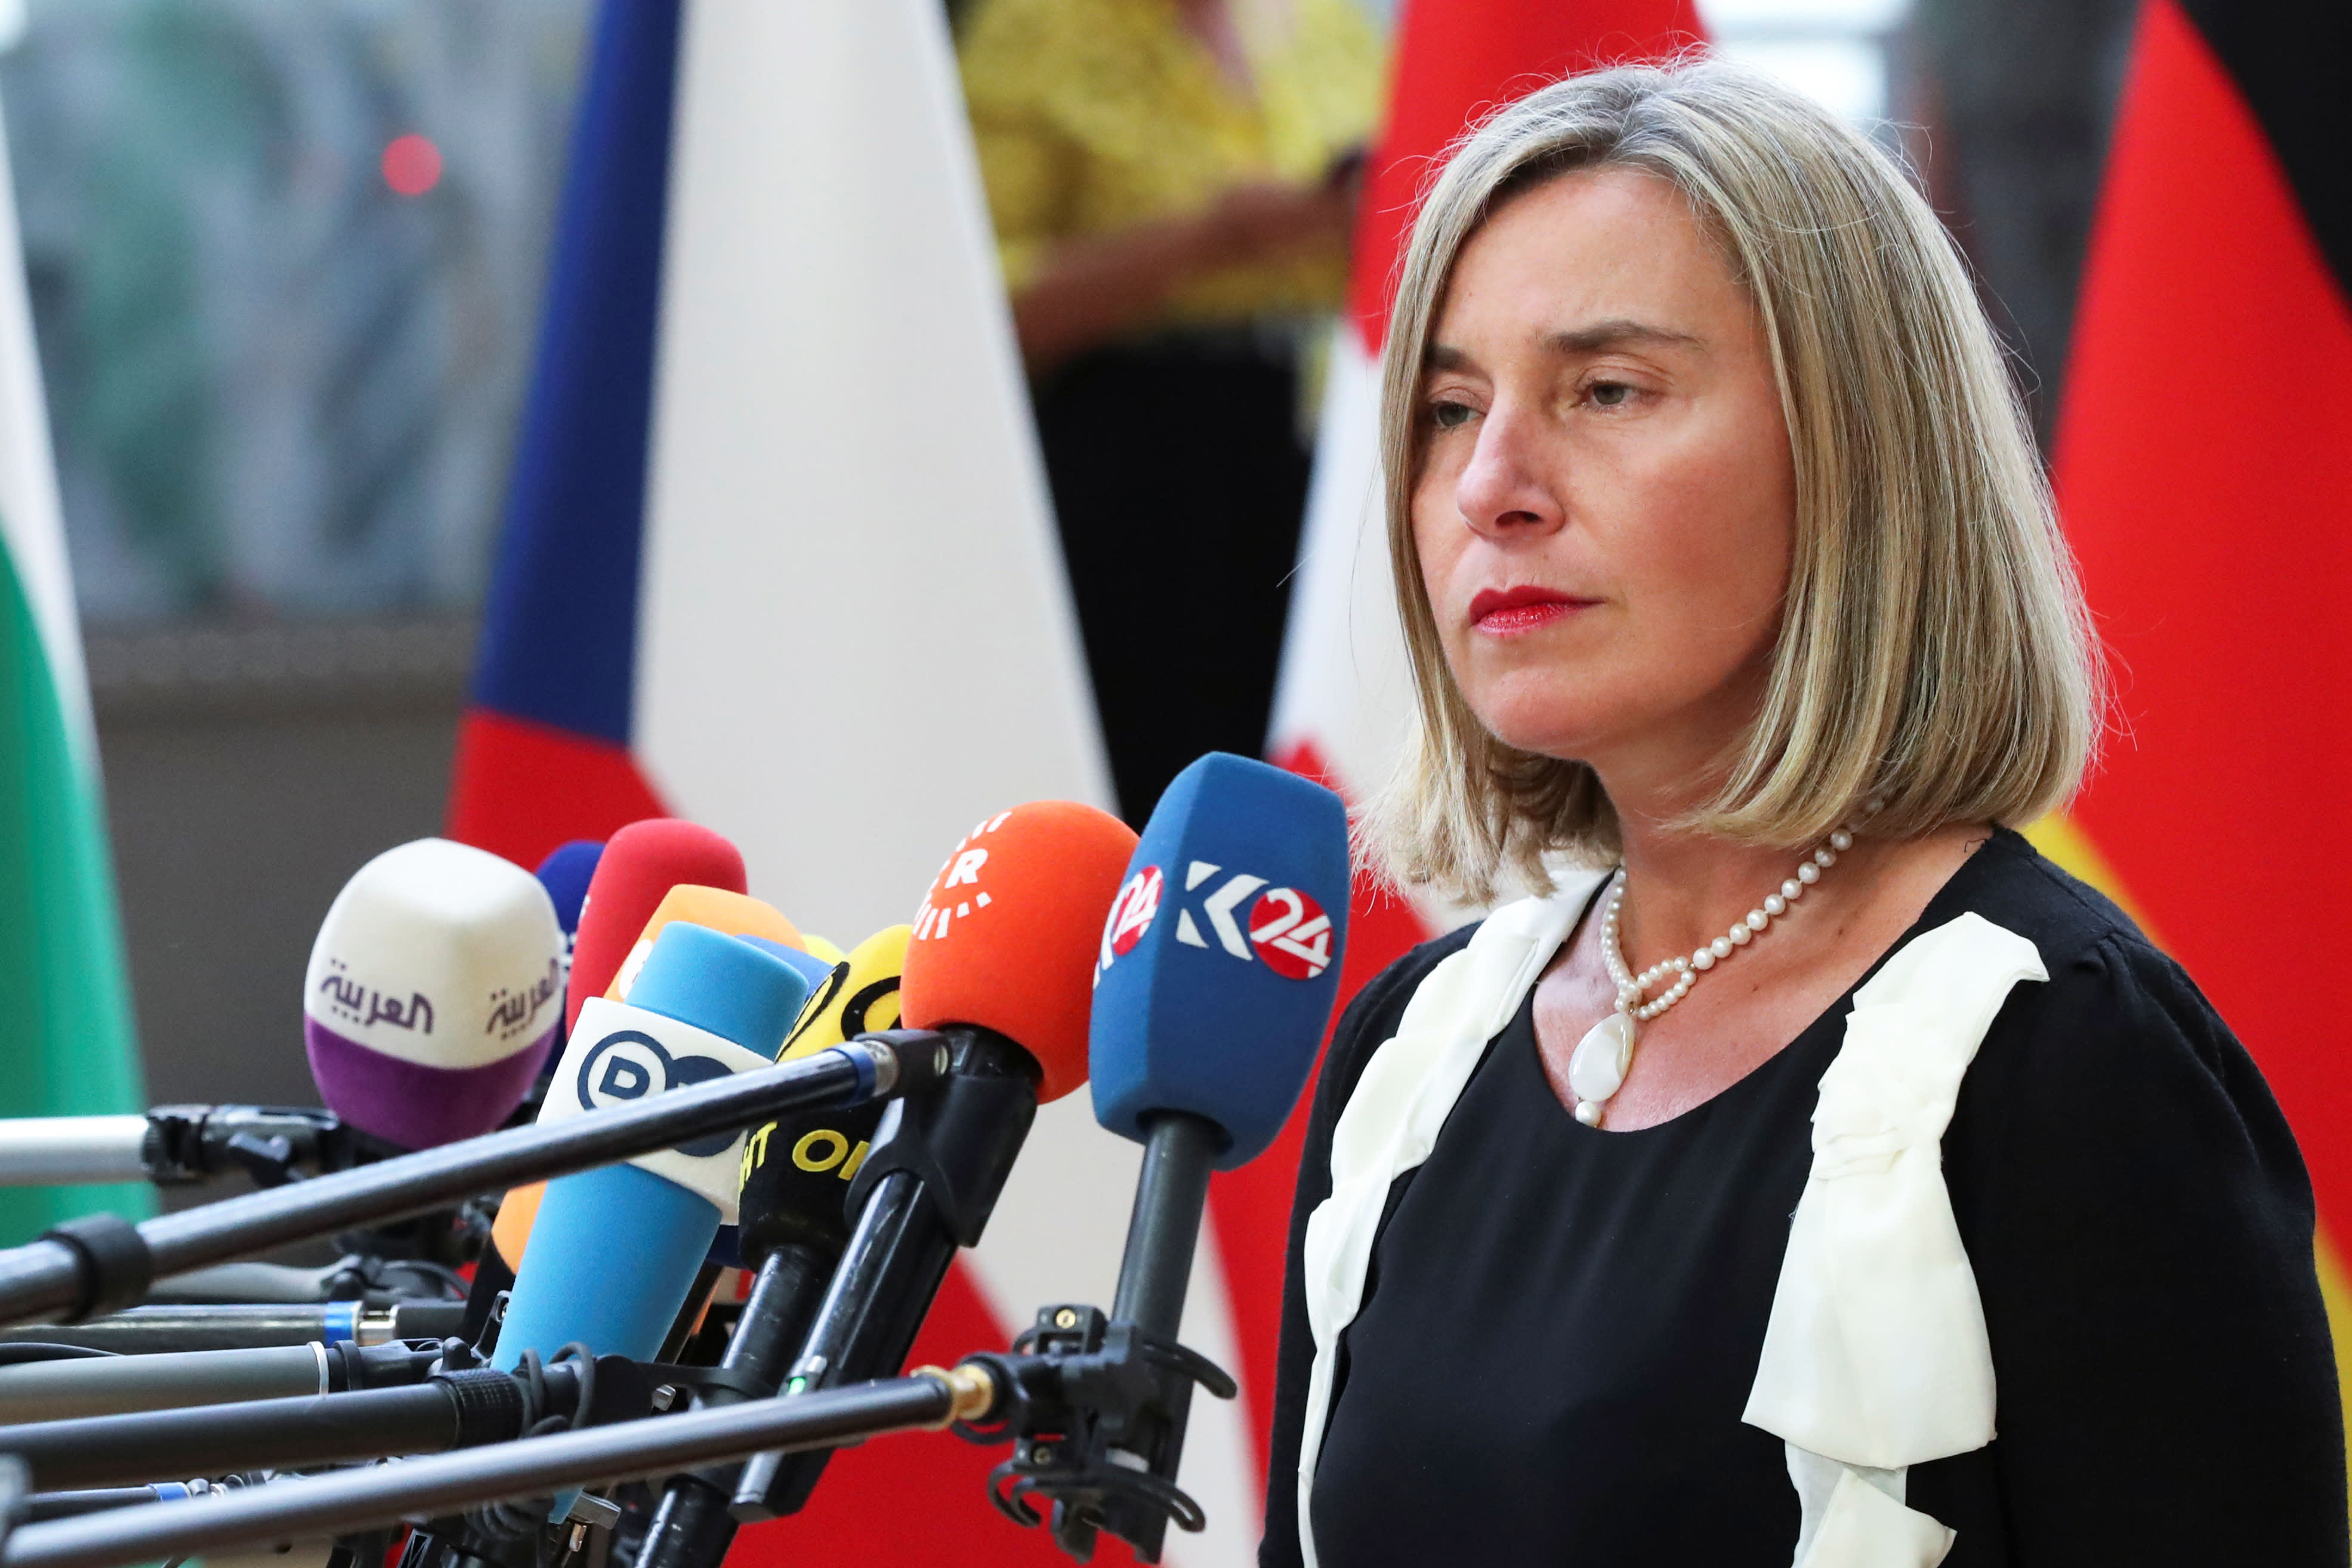 EU top diplomat says Europe will try to make sure 'escalation is avoided' between US, Iran